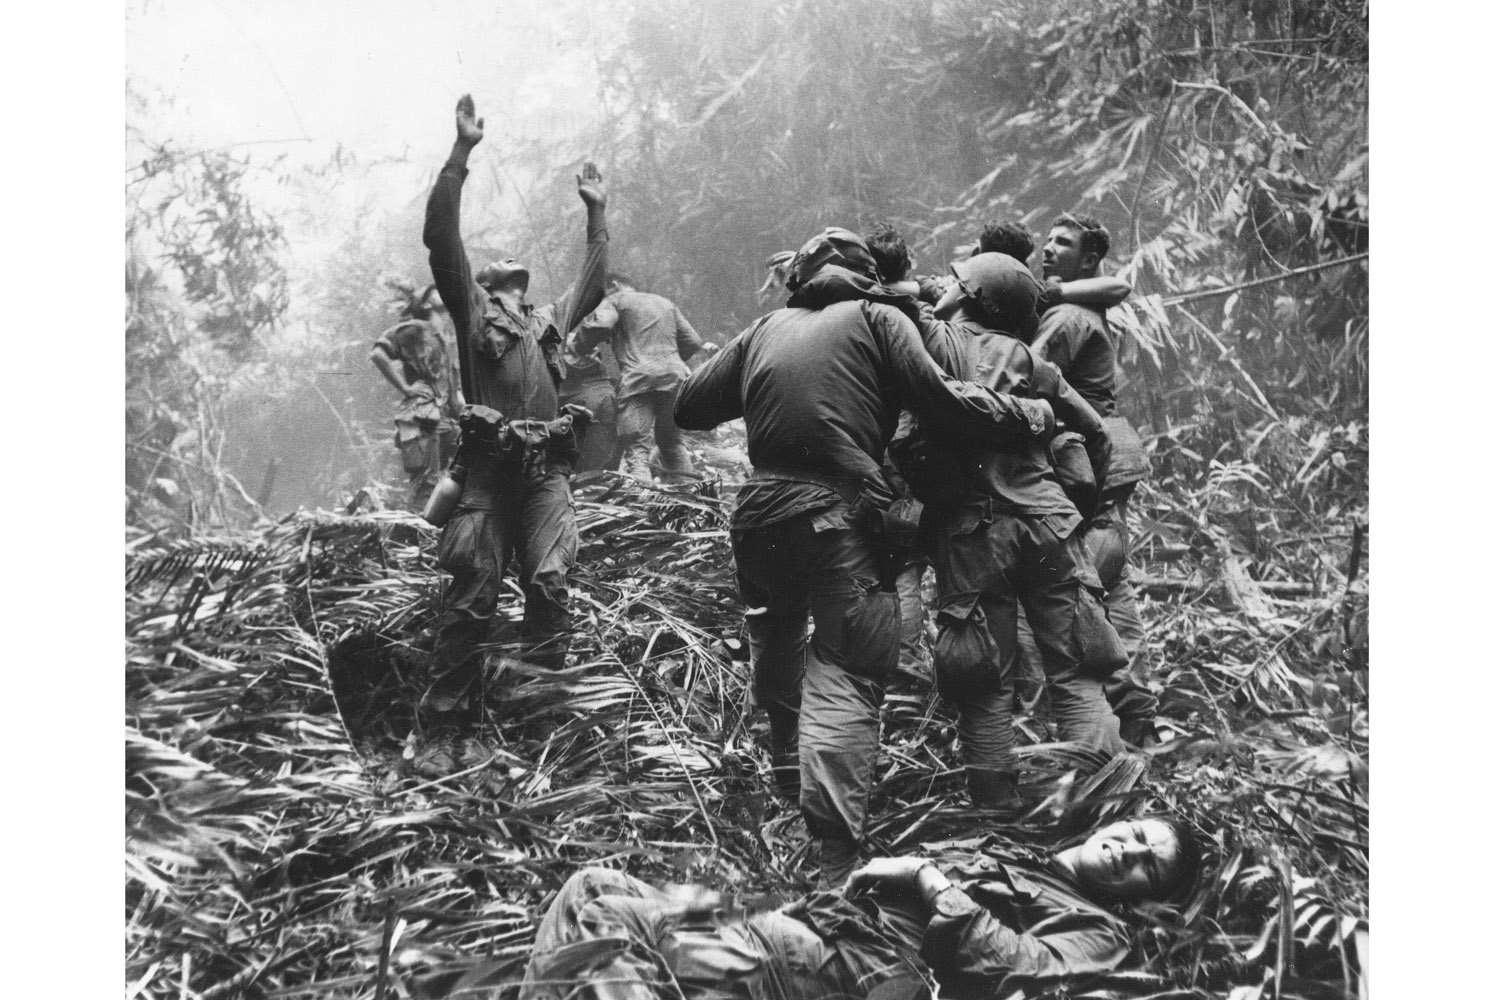 As fellow troopers aid wounded buddies, a paratrooper of A Company, 101st Airborne, guides a medical evacuation helicopter through the jungle foliage to pick up casualties during a five-day patrol of an area southwest of Hue, South Vietnam, April 1968. This photograph is featured on the cover of the Associated Press' new book 'Vietnam: The Real War' (Abrams, Oct. 2013).